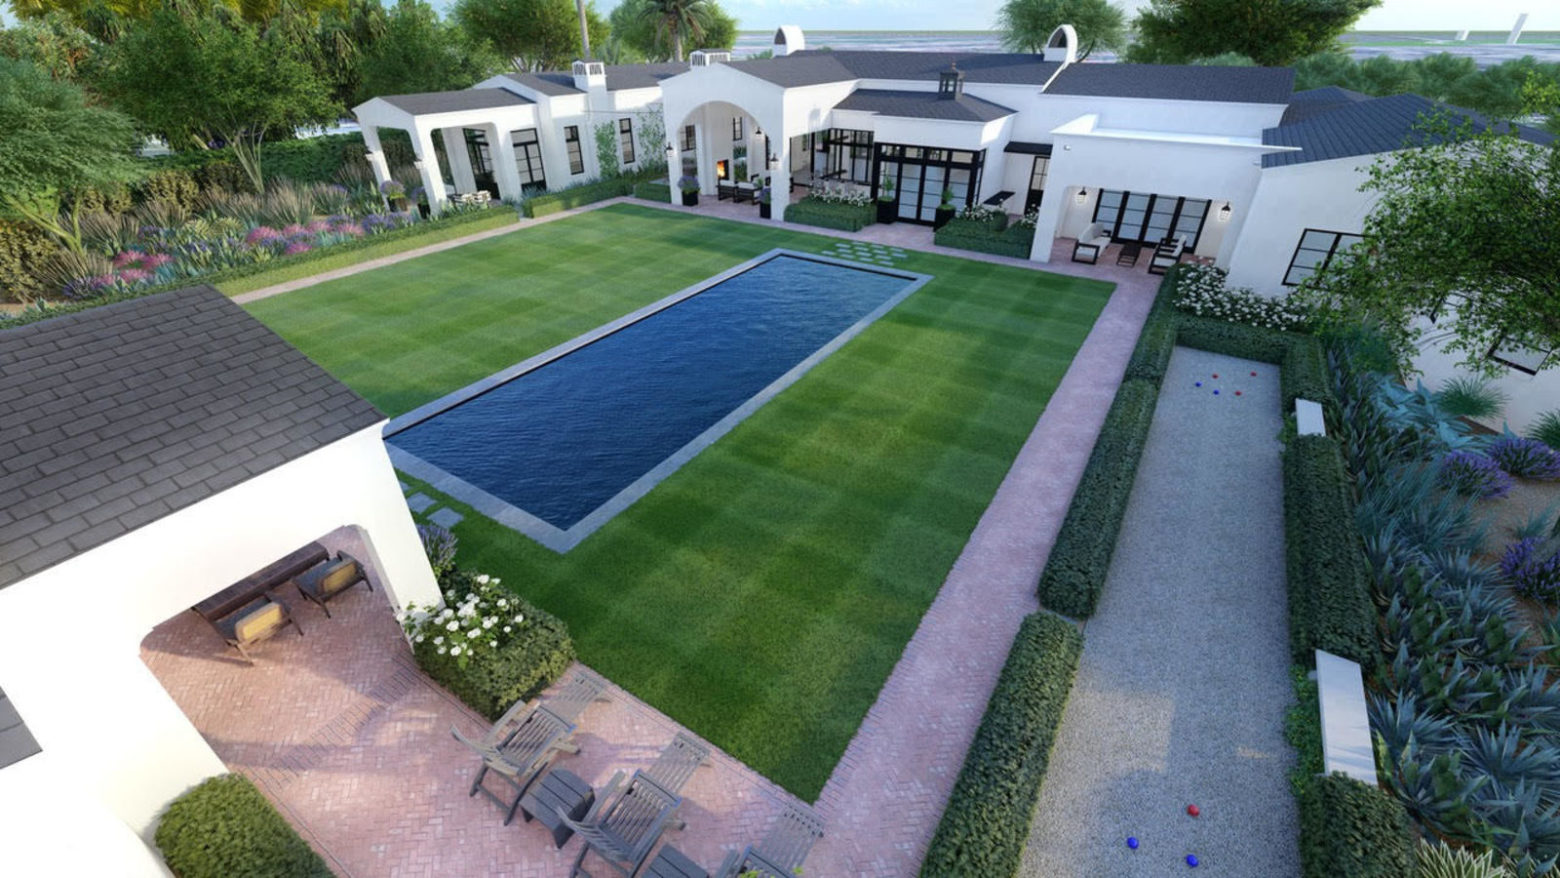 Haus Designer Designer Showhome In Paradise Valley, Arizona | Iconic Haus